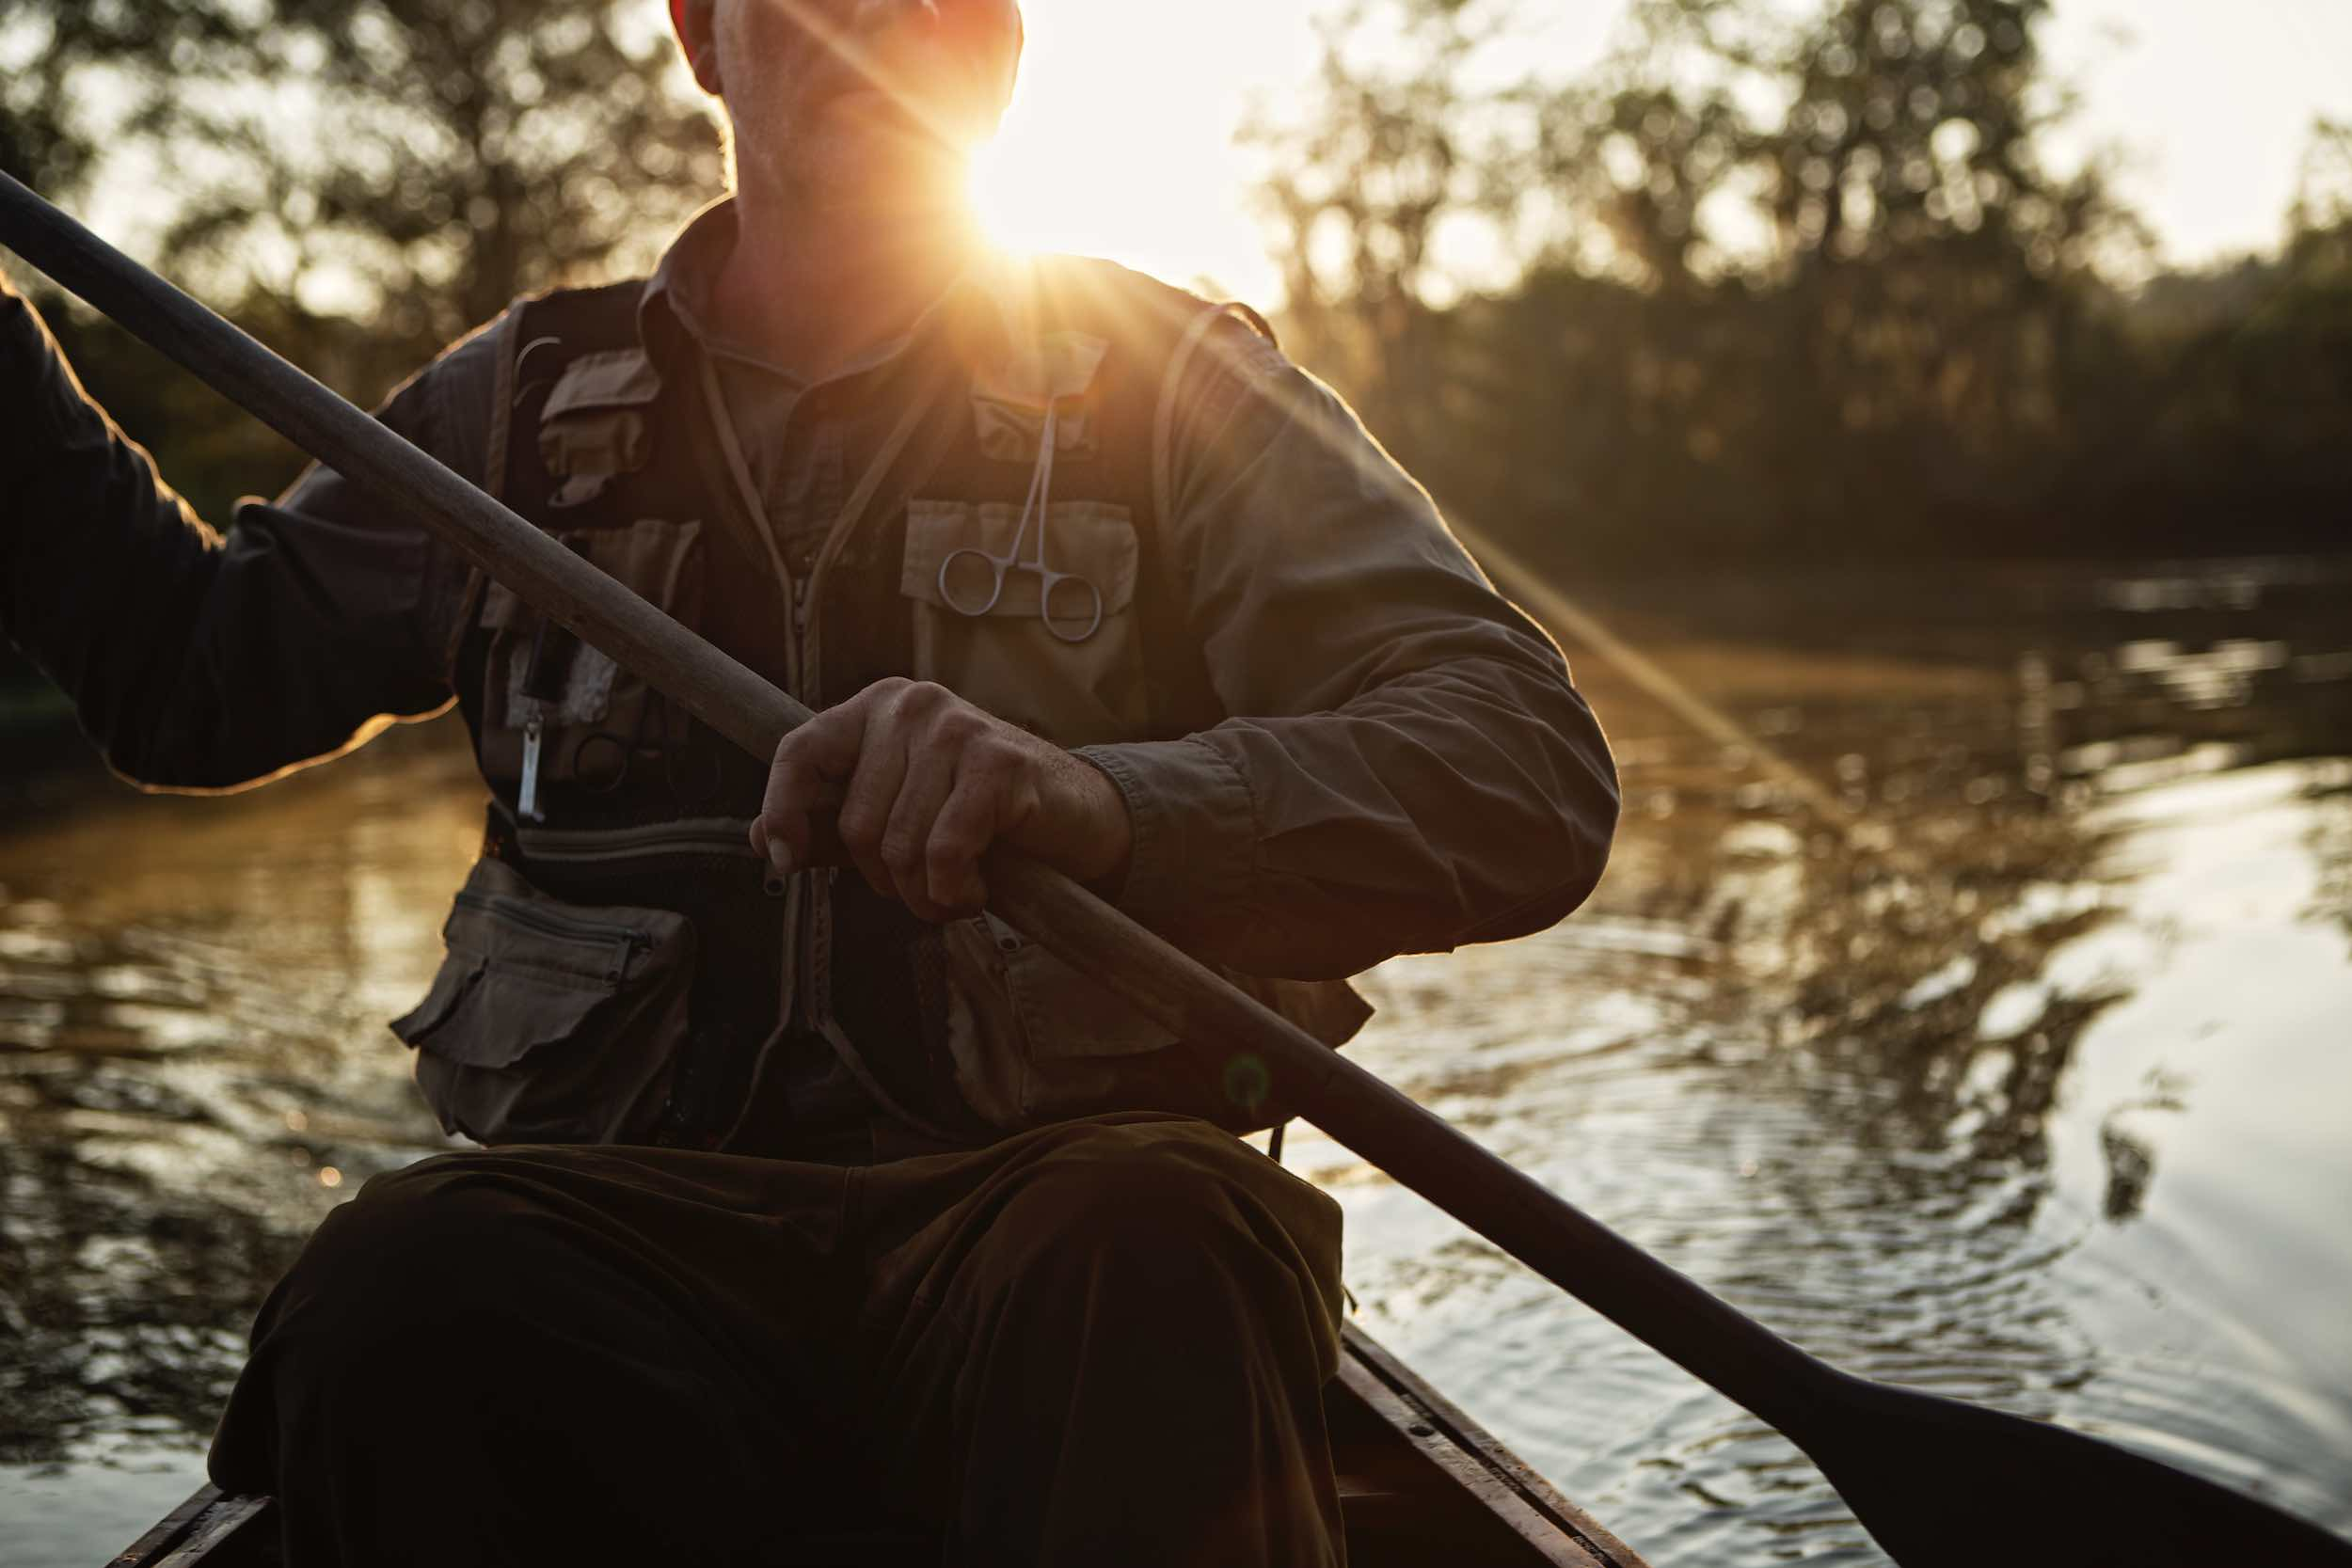 Jody Horton Photography - Canoer on the water at sunset, shot for Jack Daniels Single Barrel